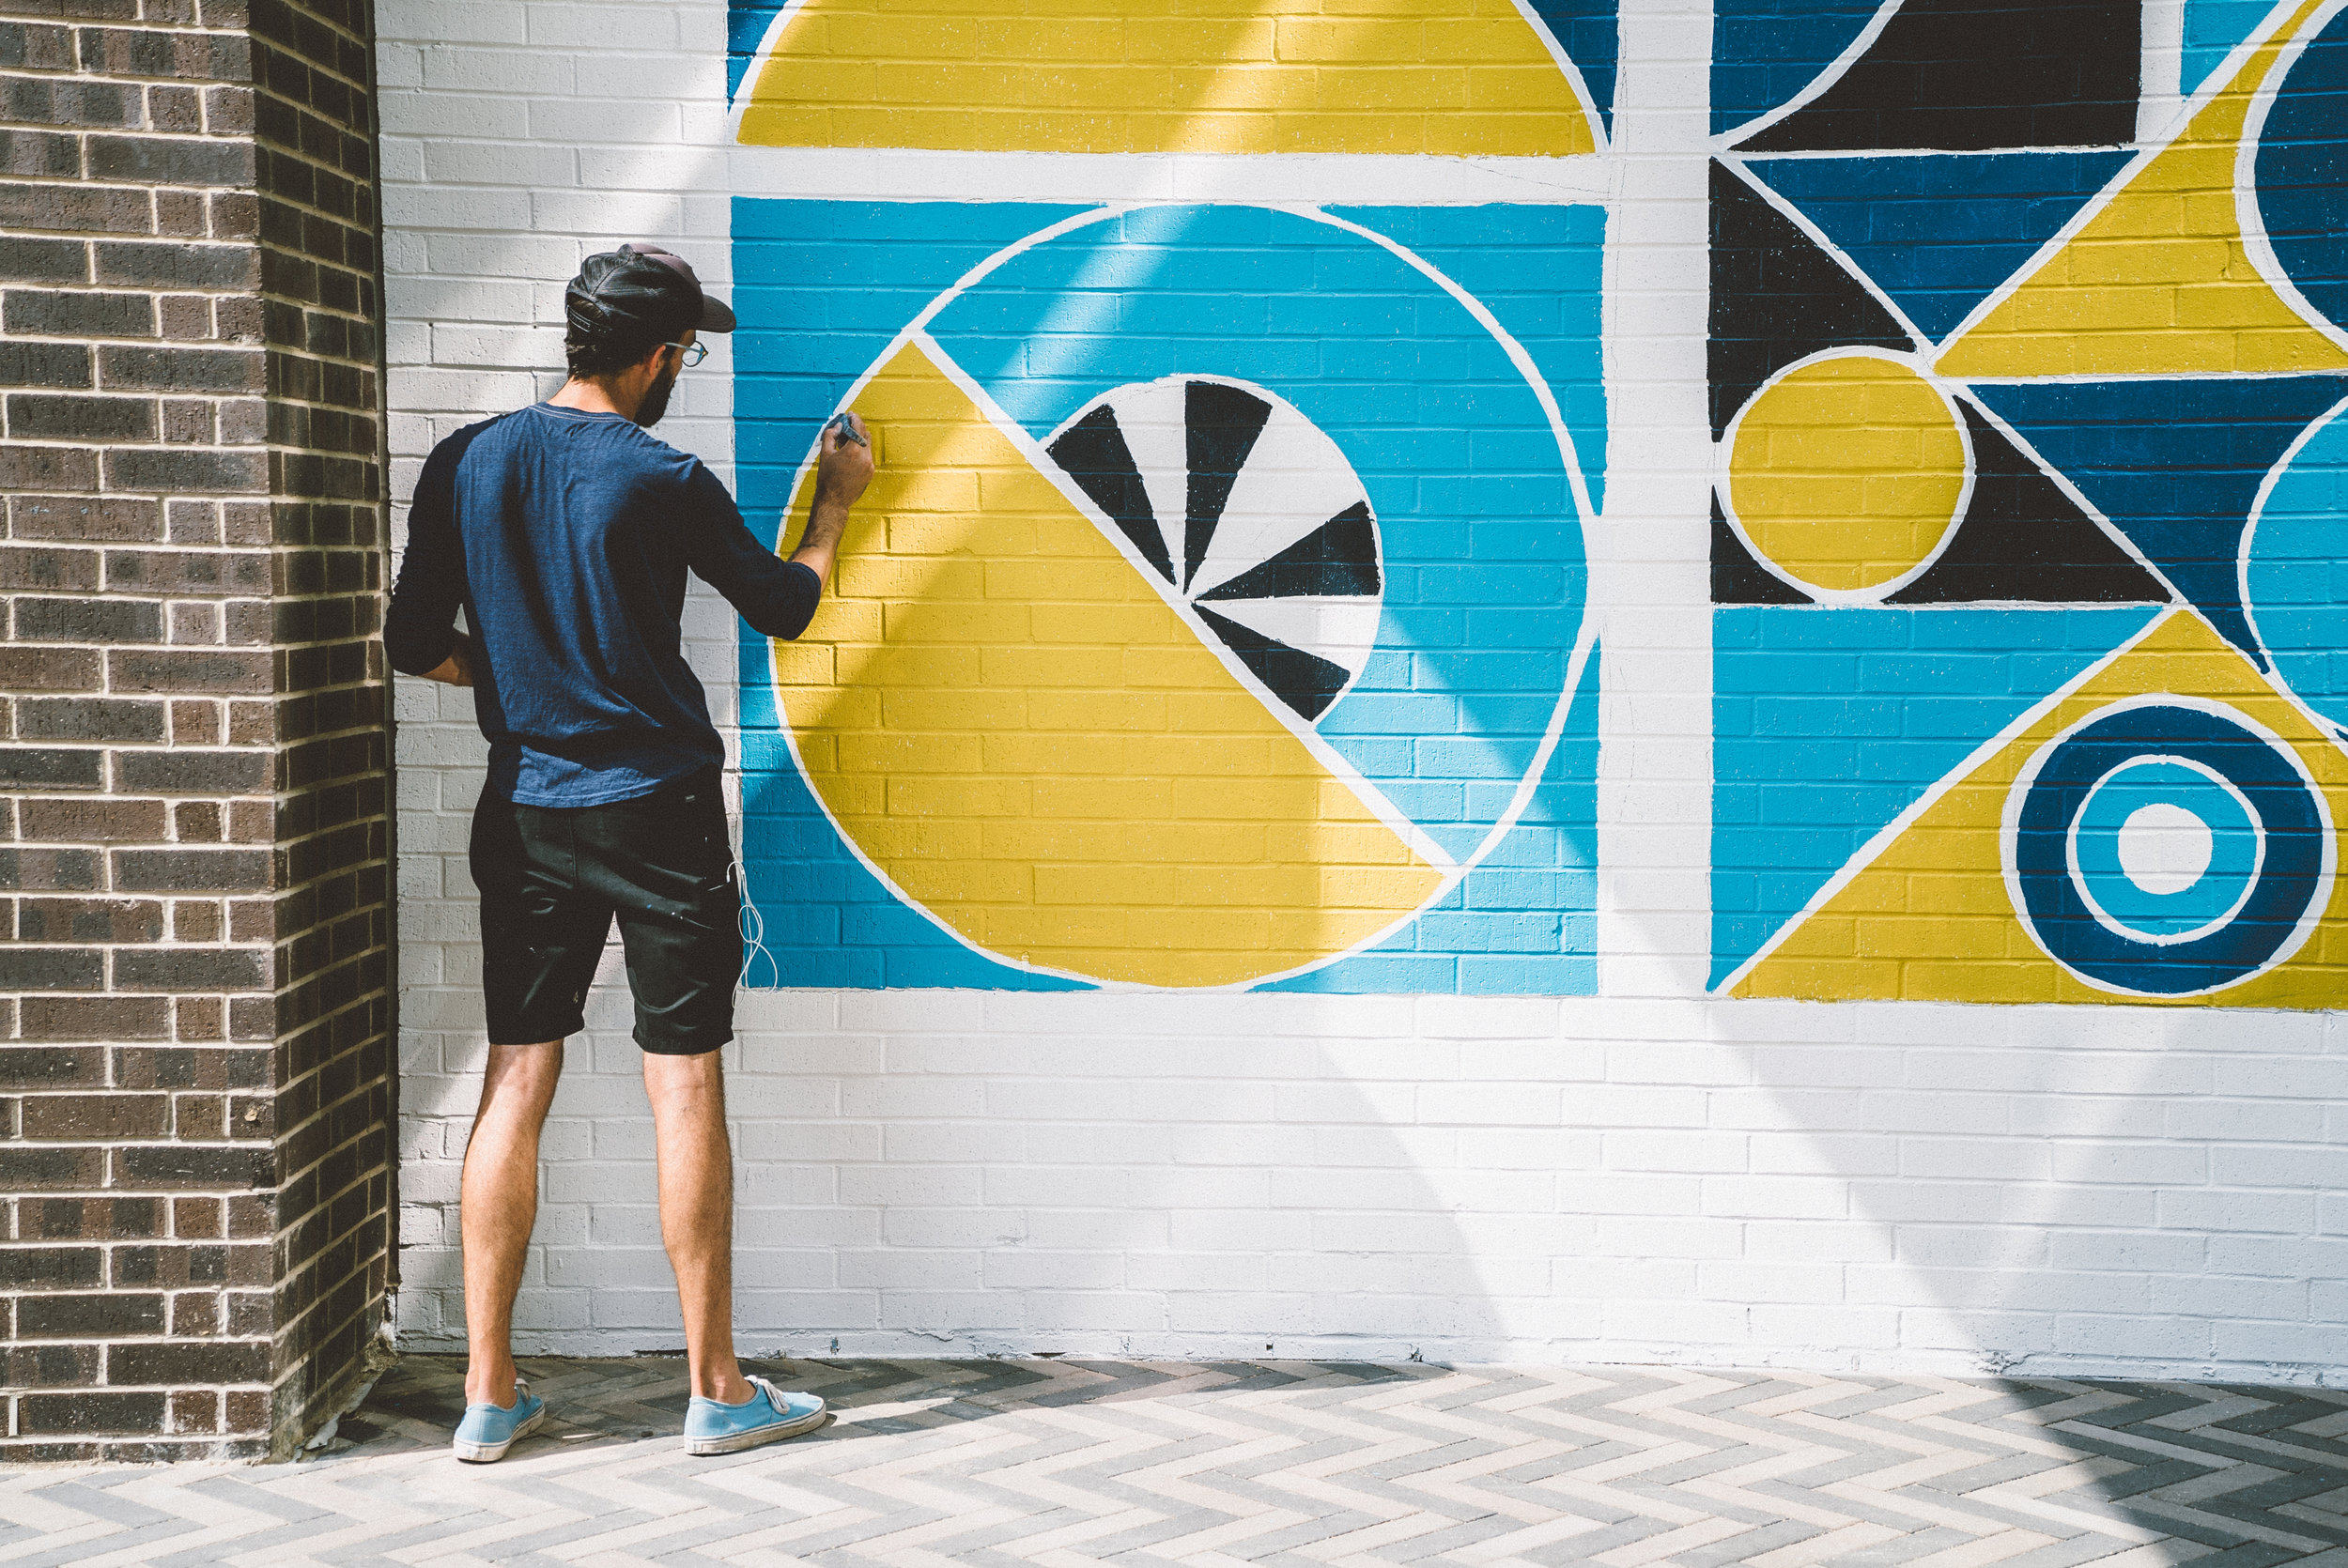 Mural for Broadstone LTD by Kyle Steed